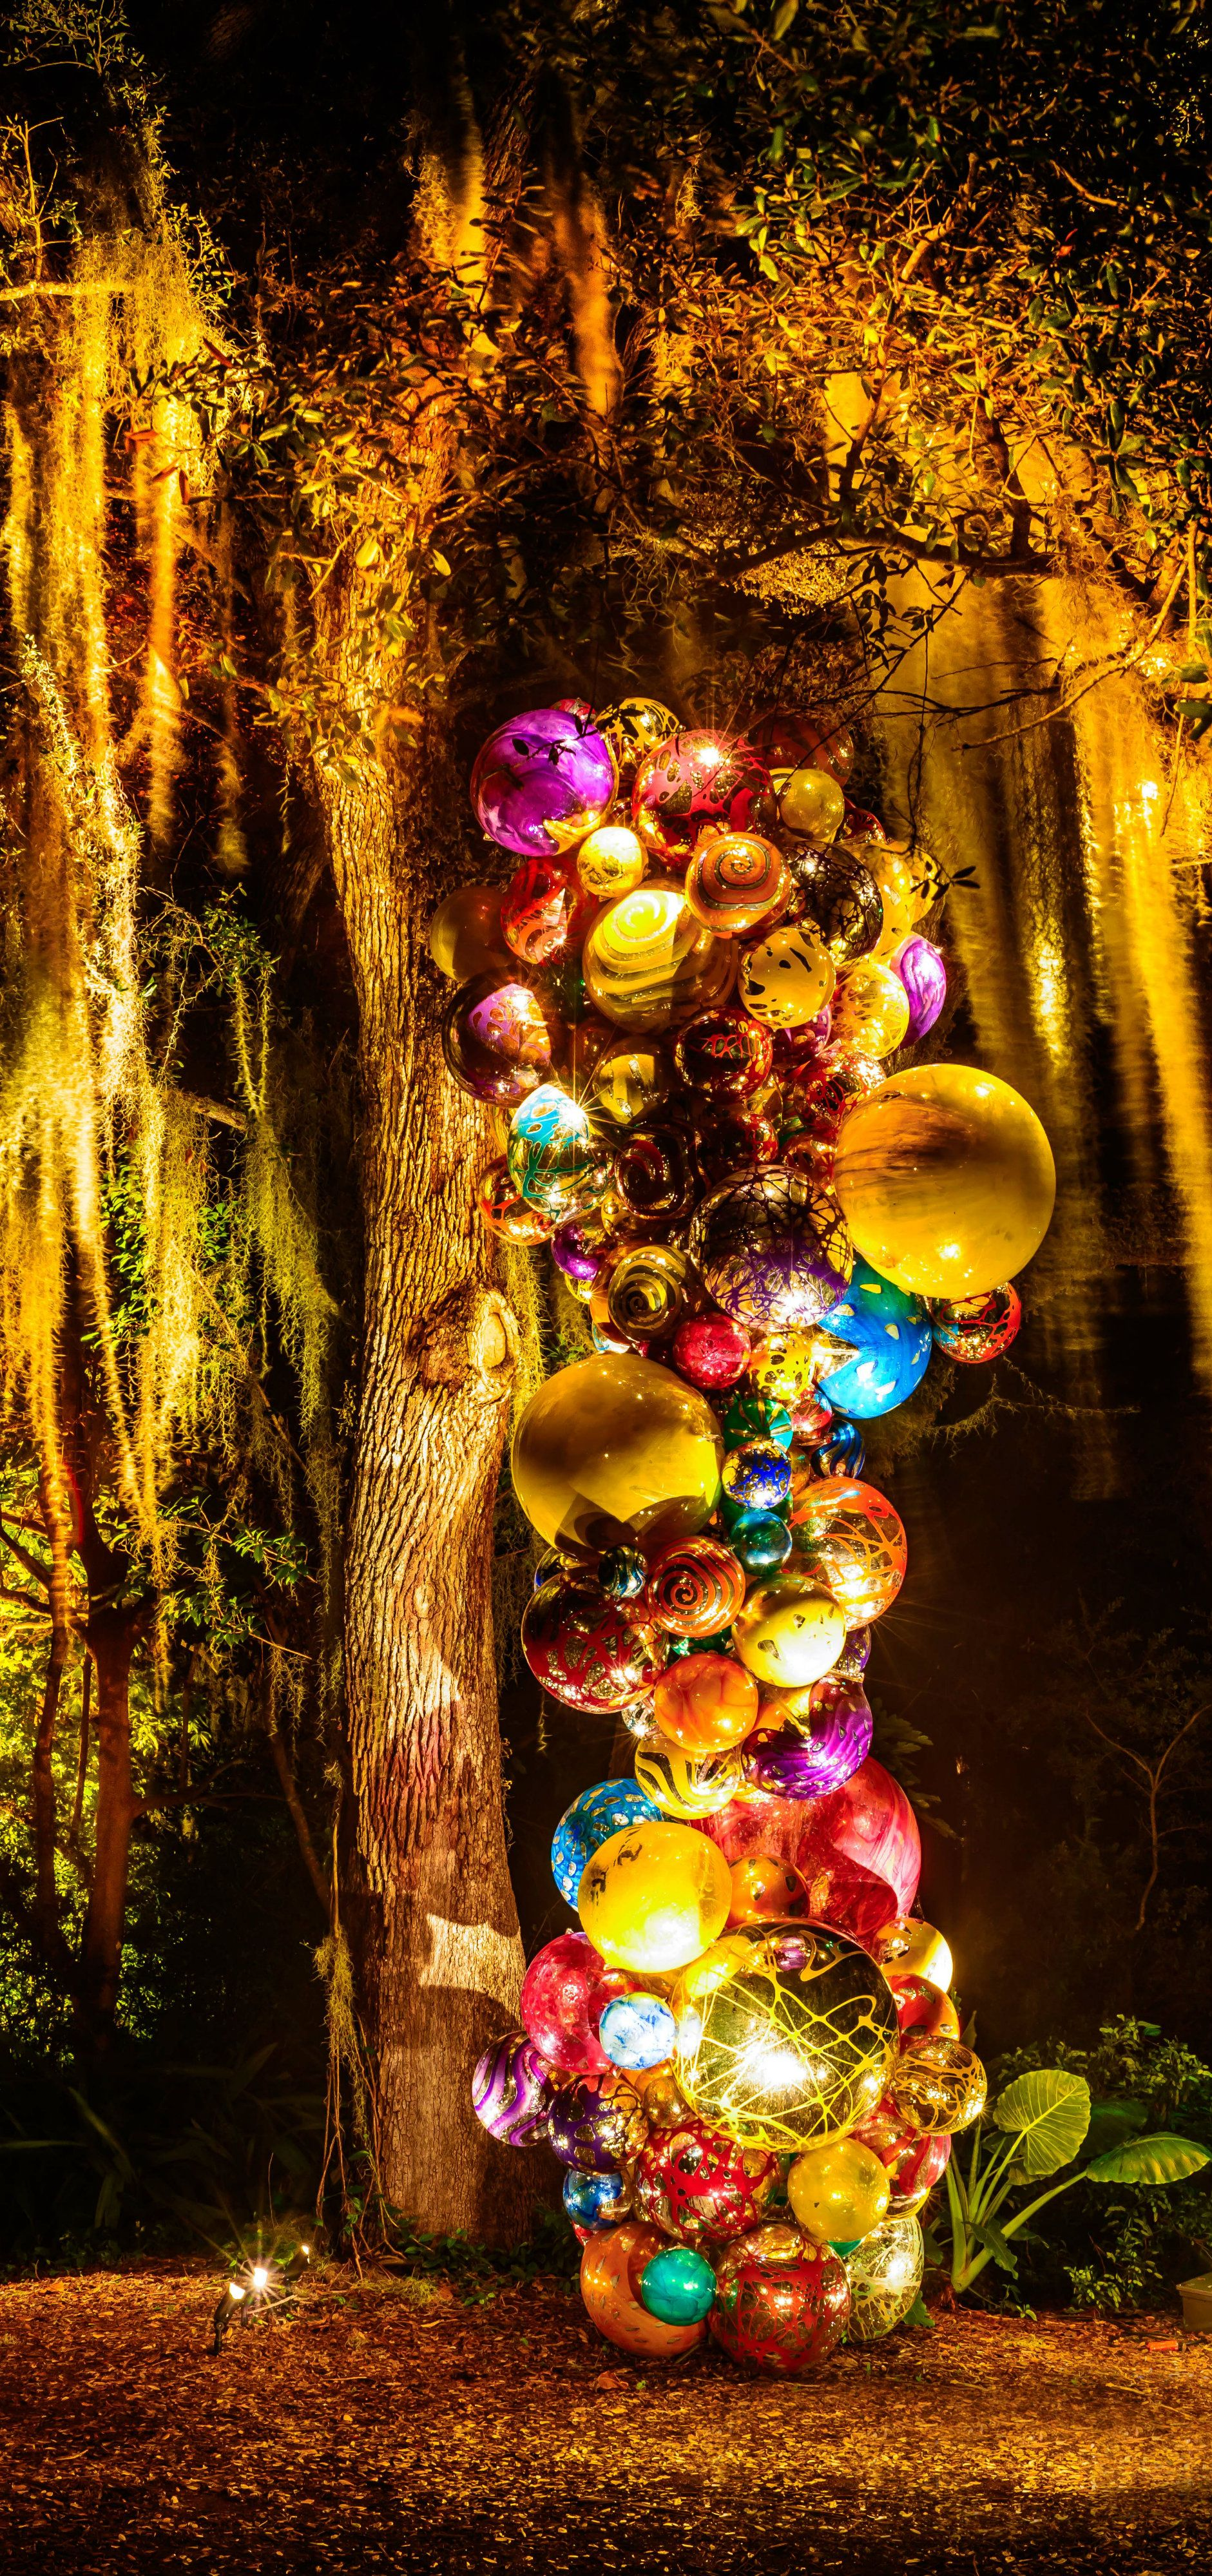 Fairchild Tropical Garden, Miami Chihuly at night   Wanderlust ...